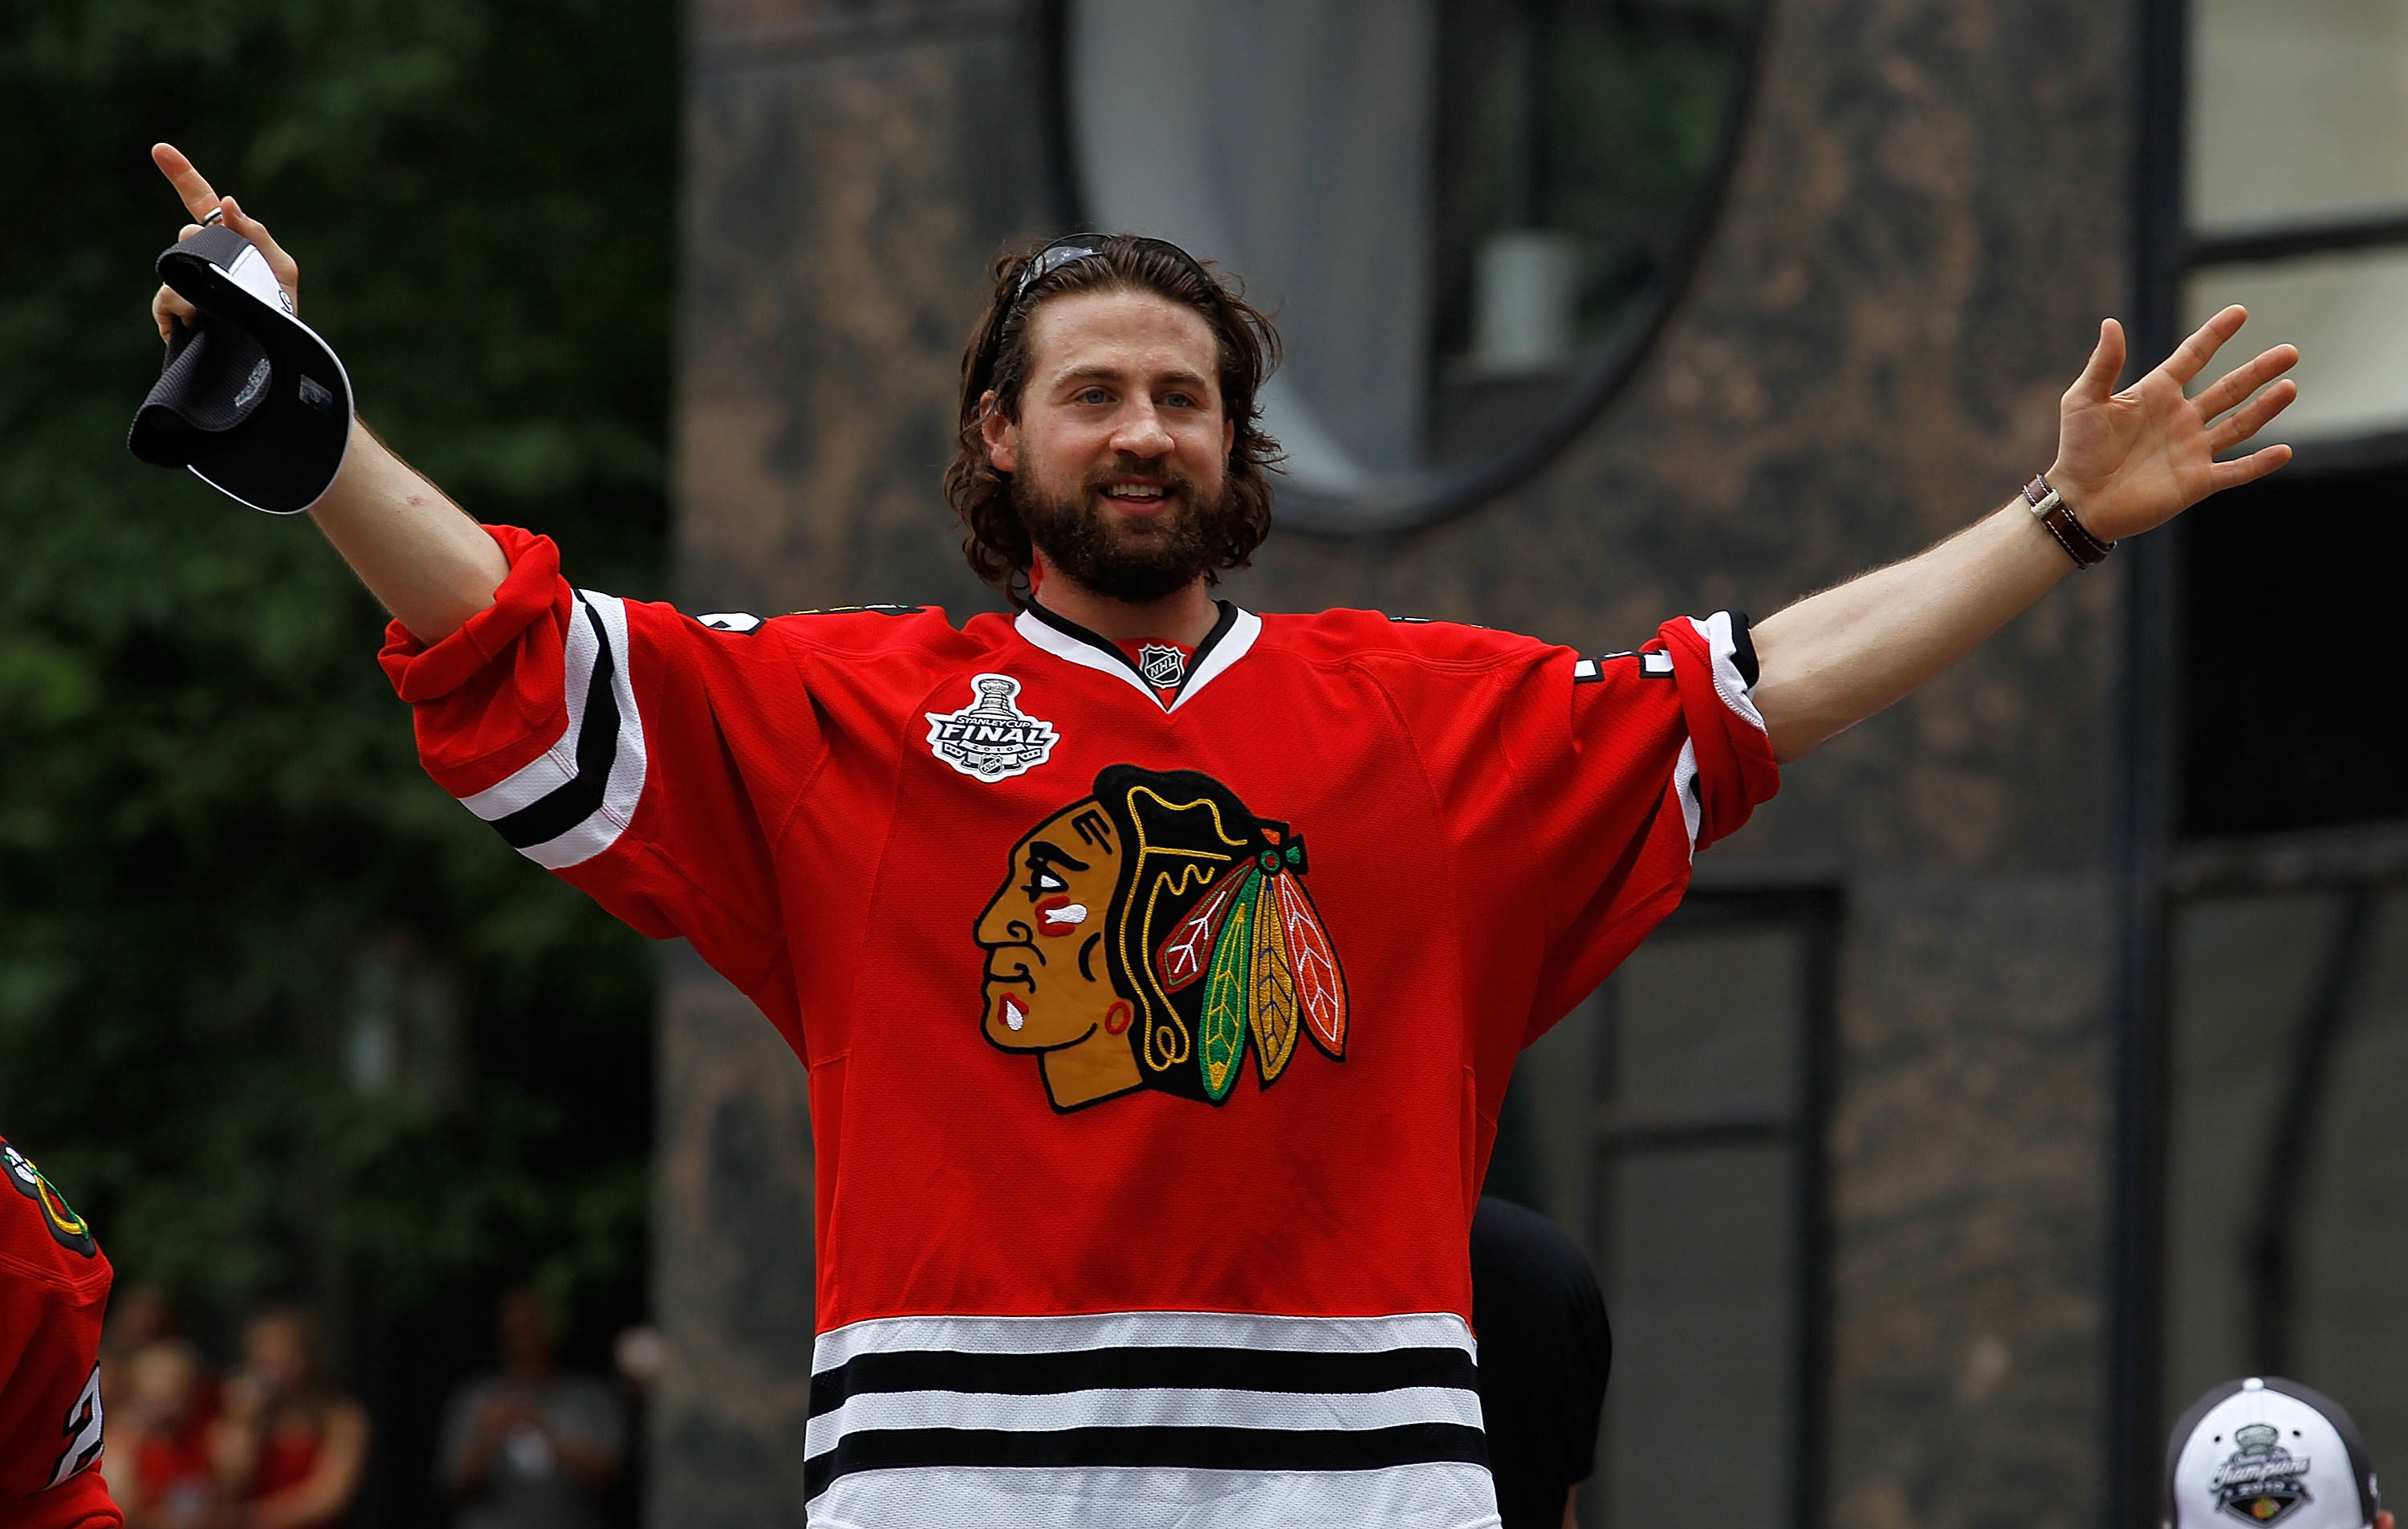 CHICAGO - JUNE 11: Adam Burish #37 waves to fans during the Chicago Blackhawks Stanley Cup victory parade and rally on June 11, 2010 in Chicago, Illinois. (Photo by Jonathan Daniel/Getty Images)